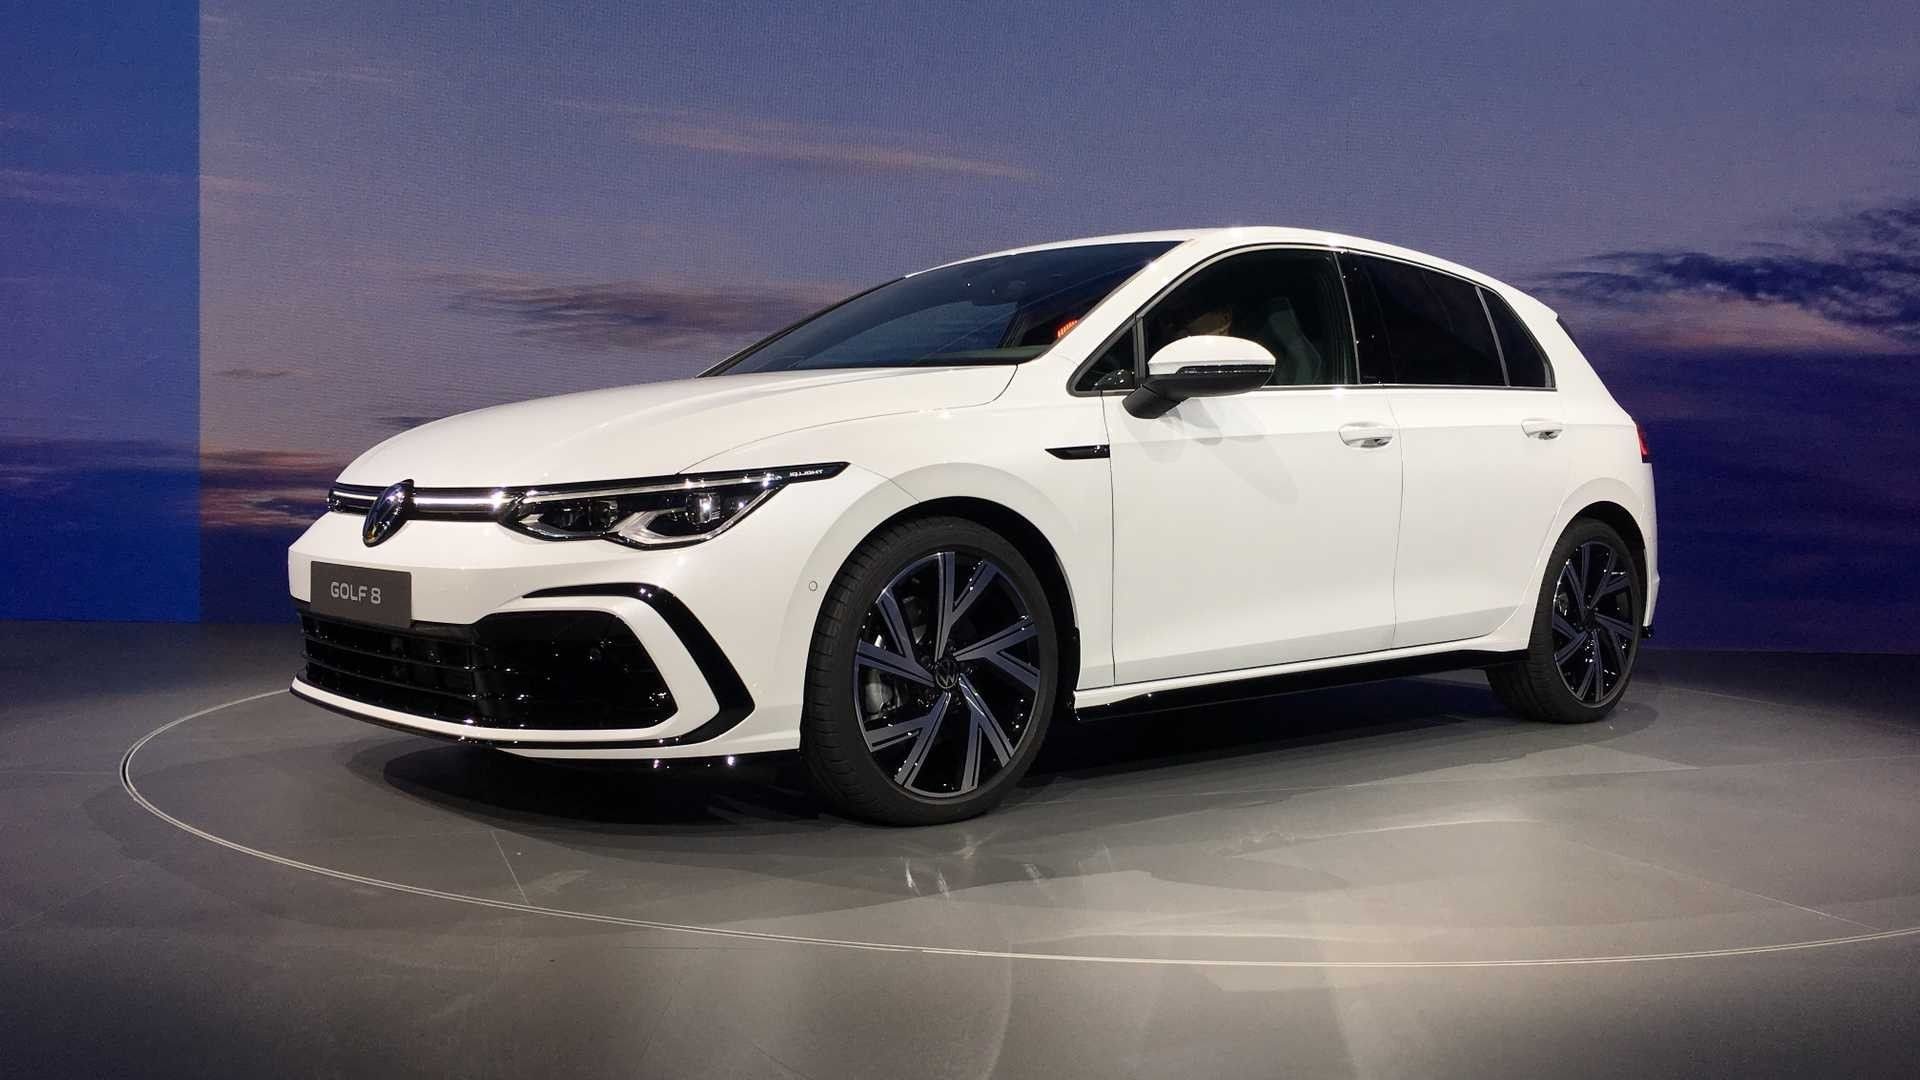 Volkswagen EGolf 2020 Price di 2020